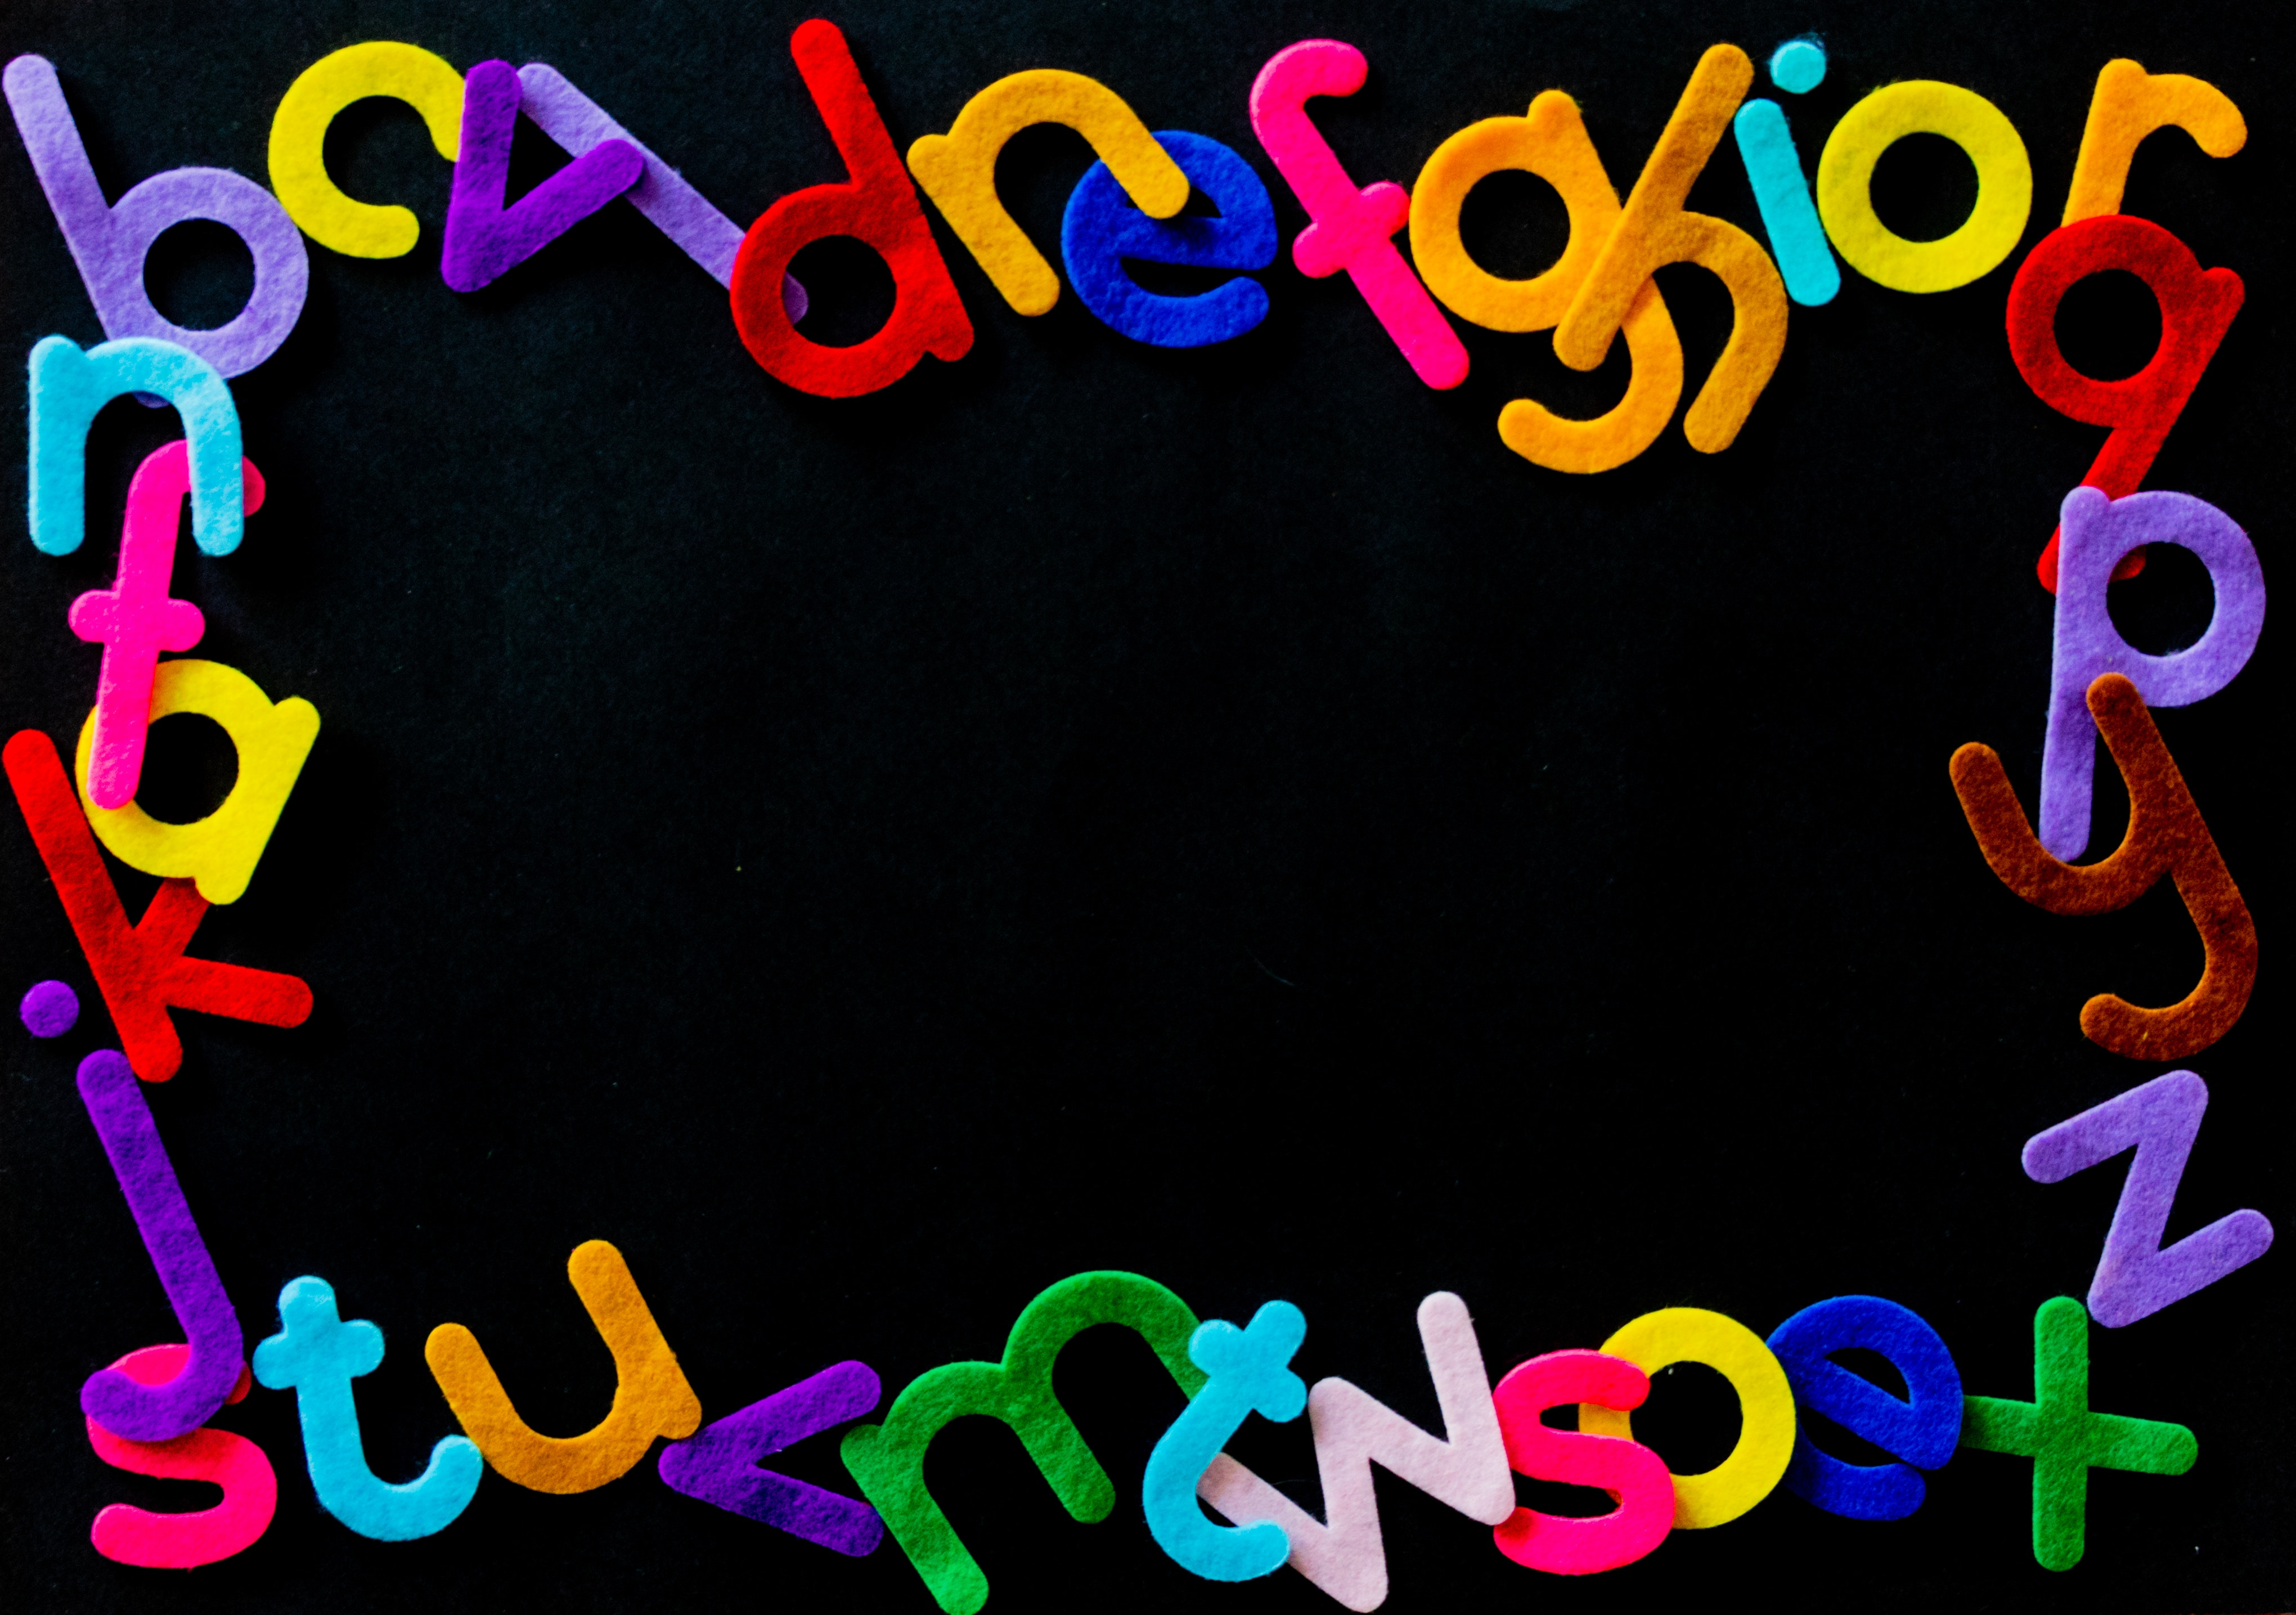 black-background-with-alphabet-letters-text-overlay-1339356